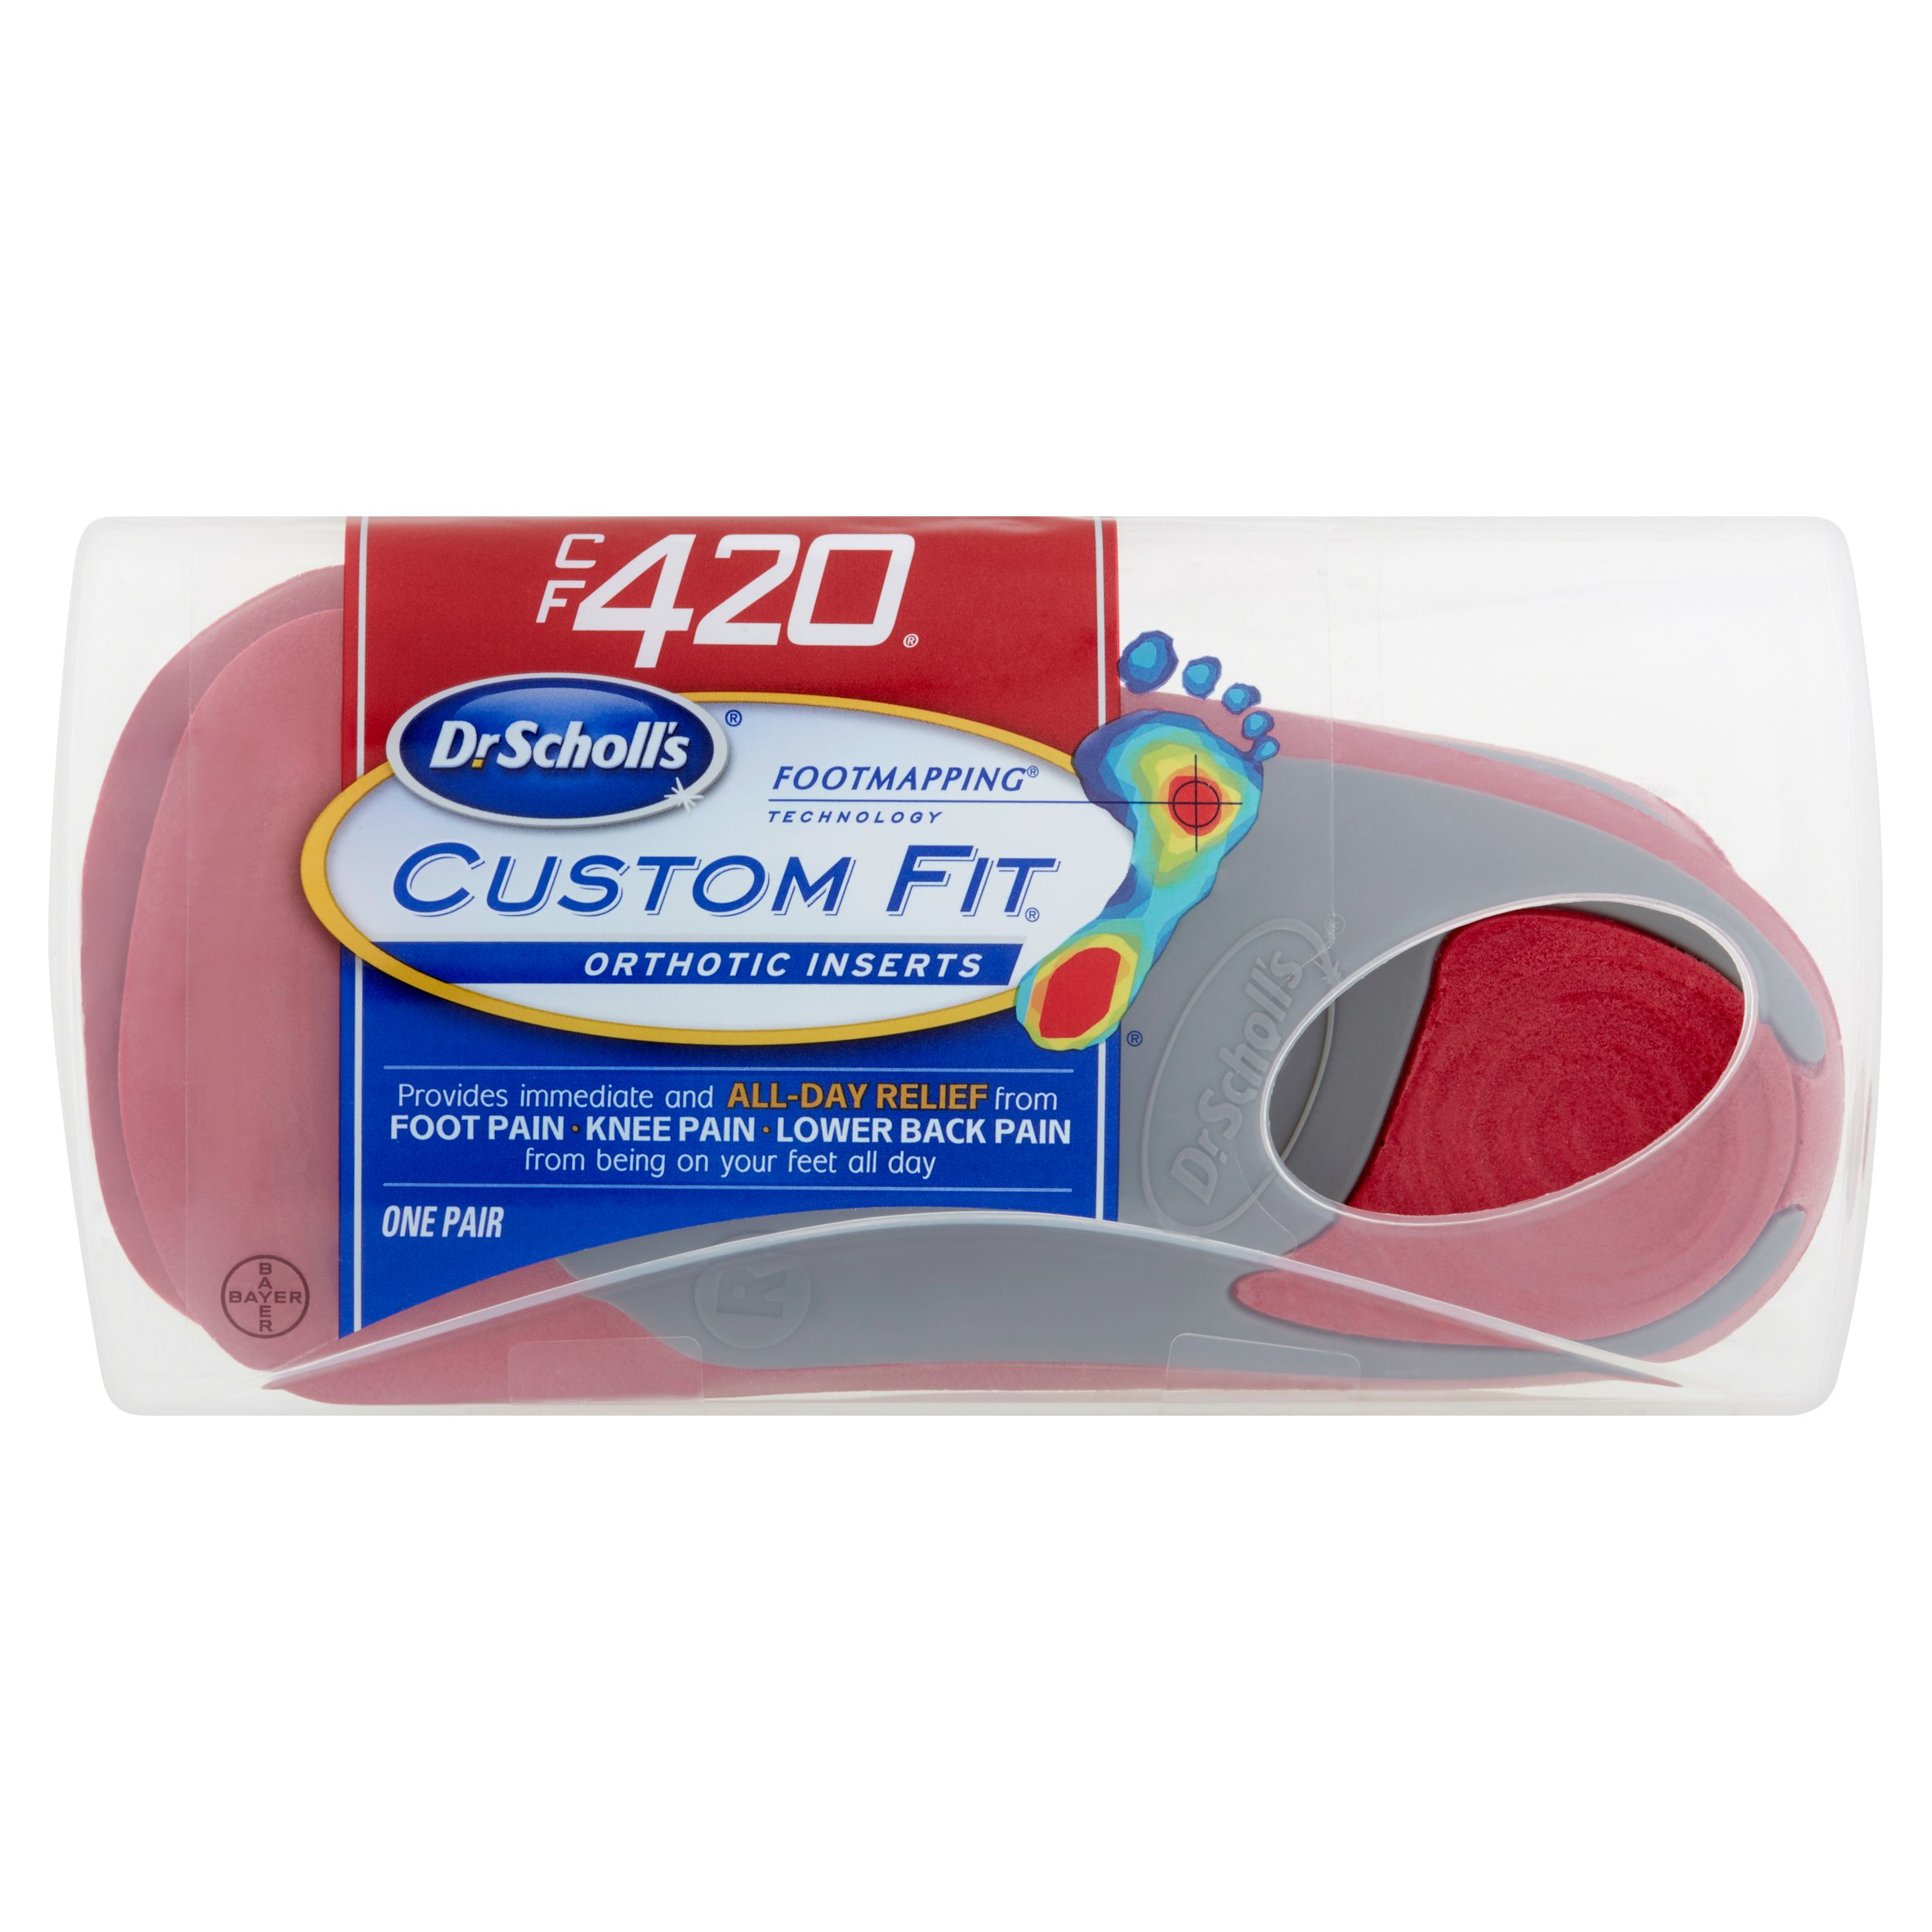 Bayer Dr Scholl's Footmapping Technology Custom Fit CF 420 Orthotic Inserts by Bayer HealthCare LLC